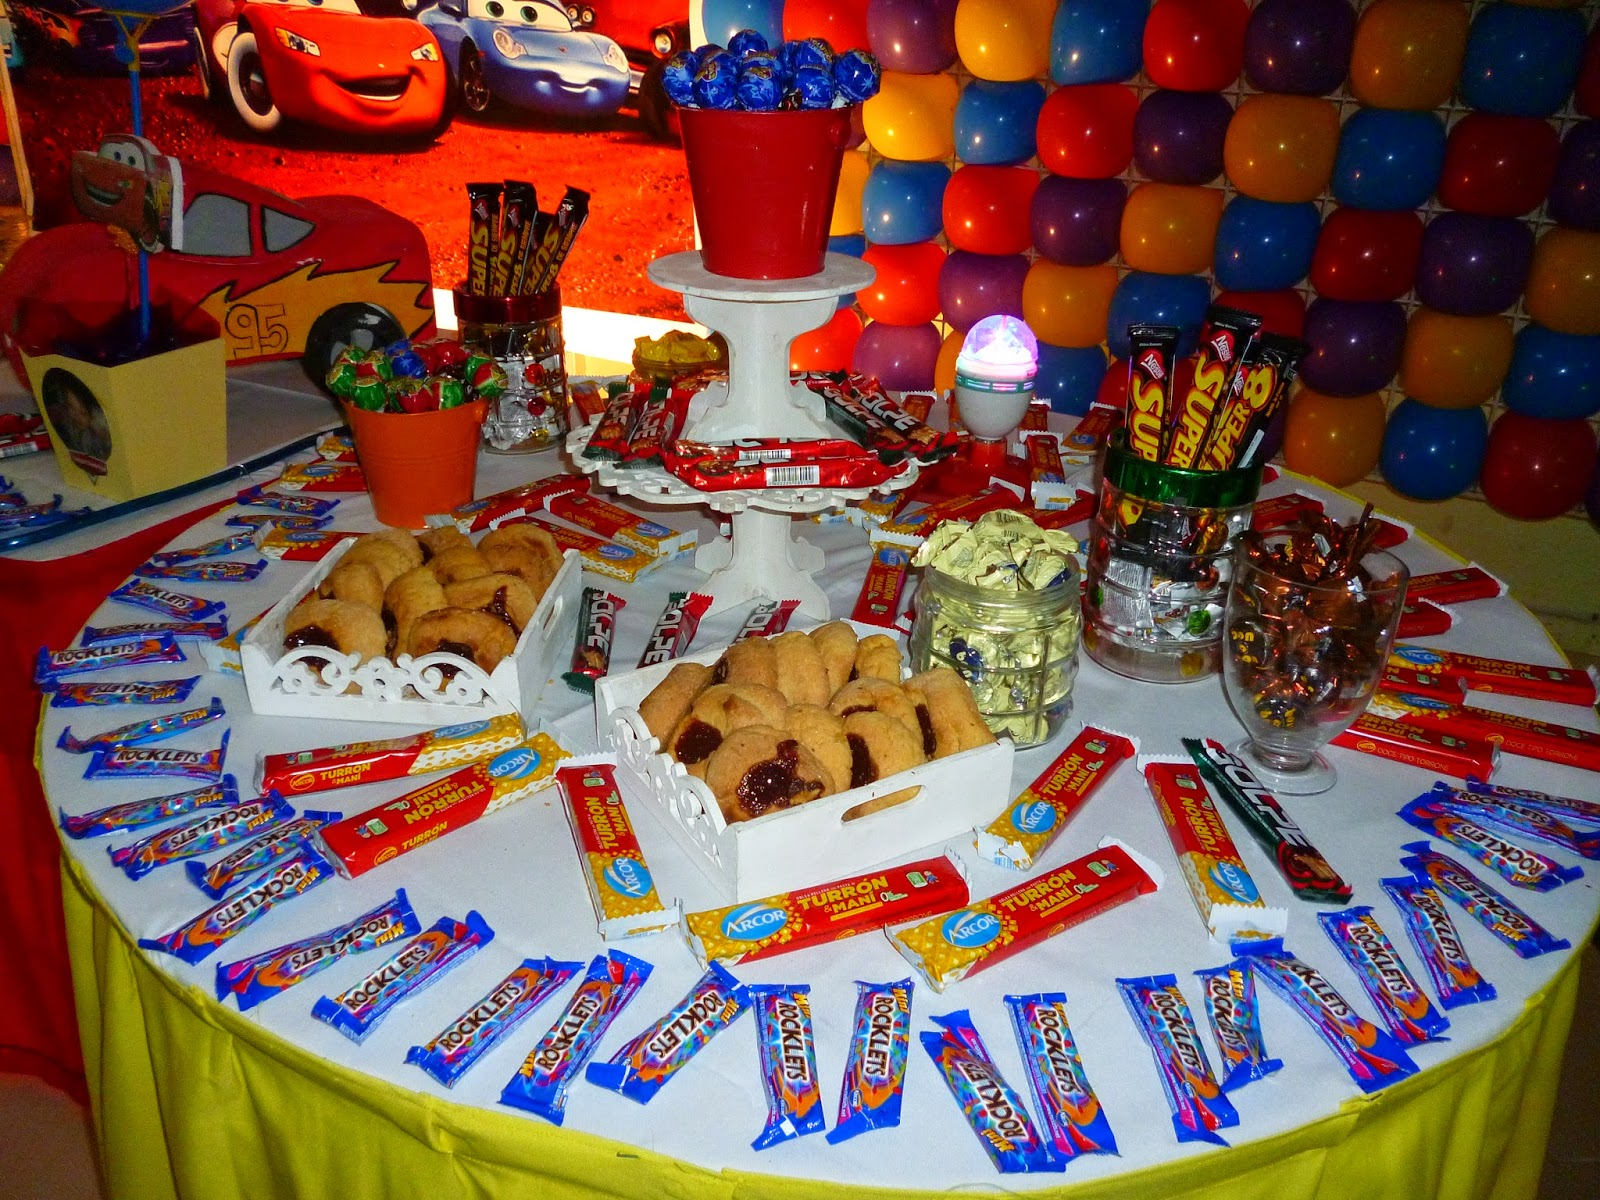 Fiestas personalizadas ideas de decoraci n de fiesta - Ideas decoracion fiesta ...